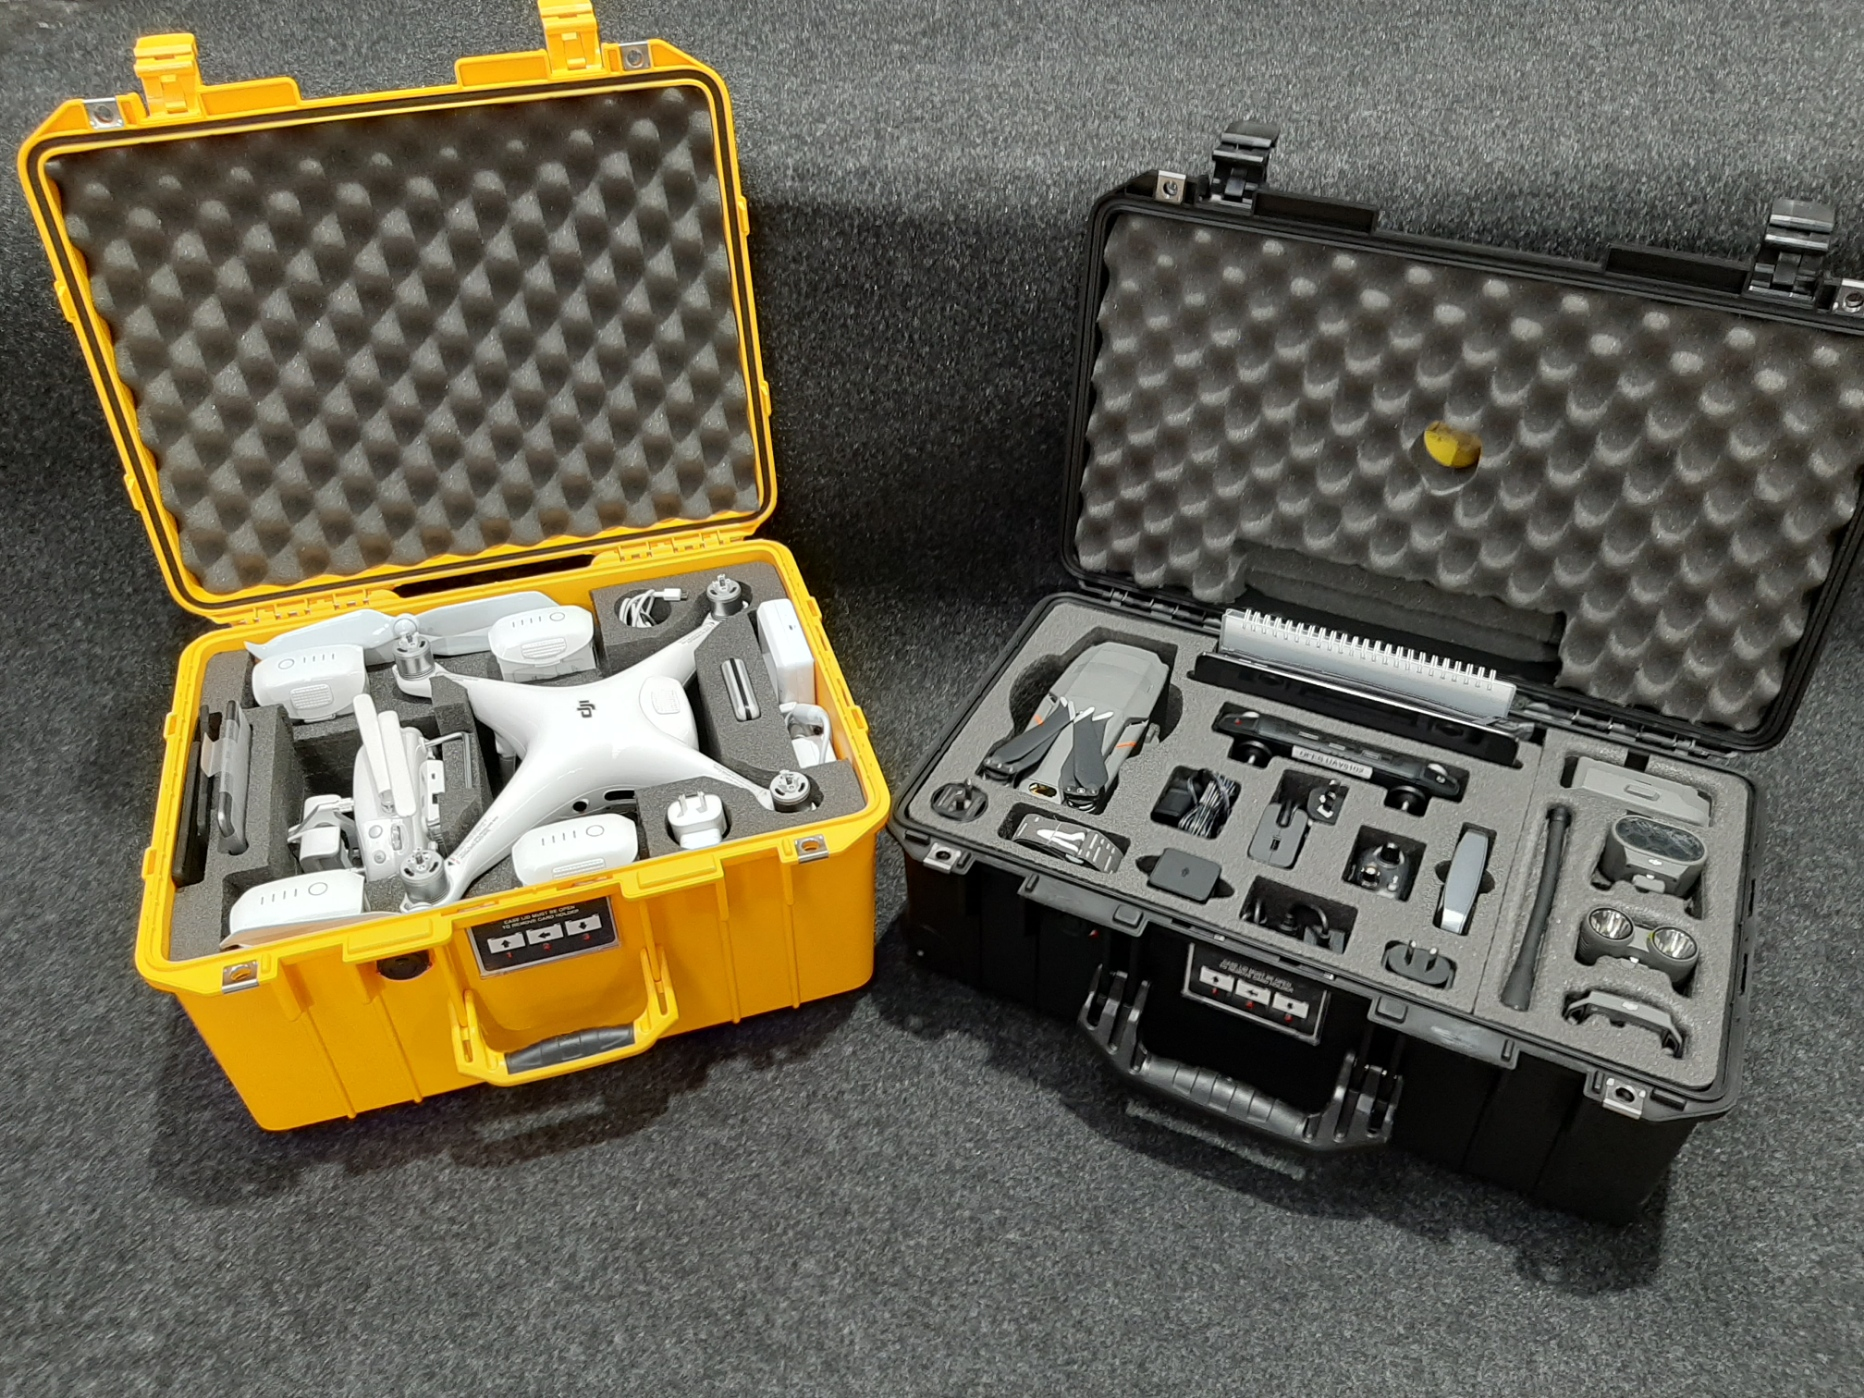 Pelican 1557 and 1535 Air Cases suited to the DJI Phantoms custom fitted by Qld Protective Case in Brendale, Brisbane